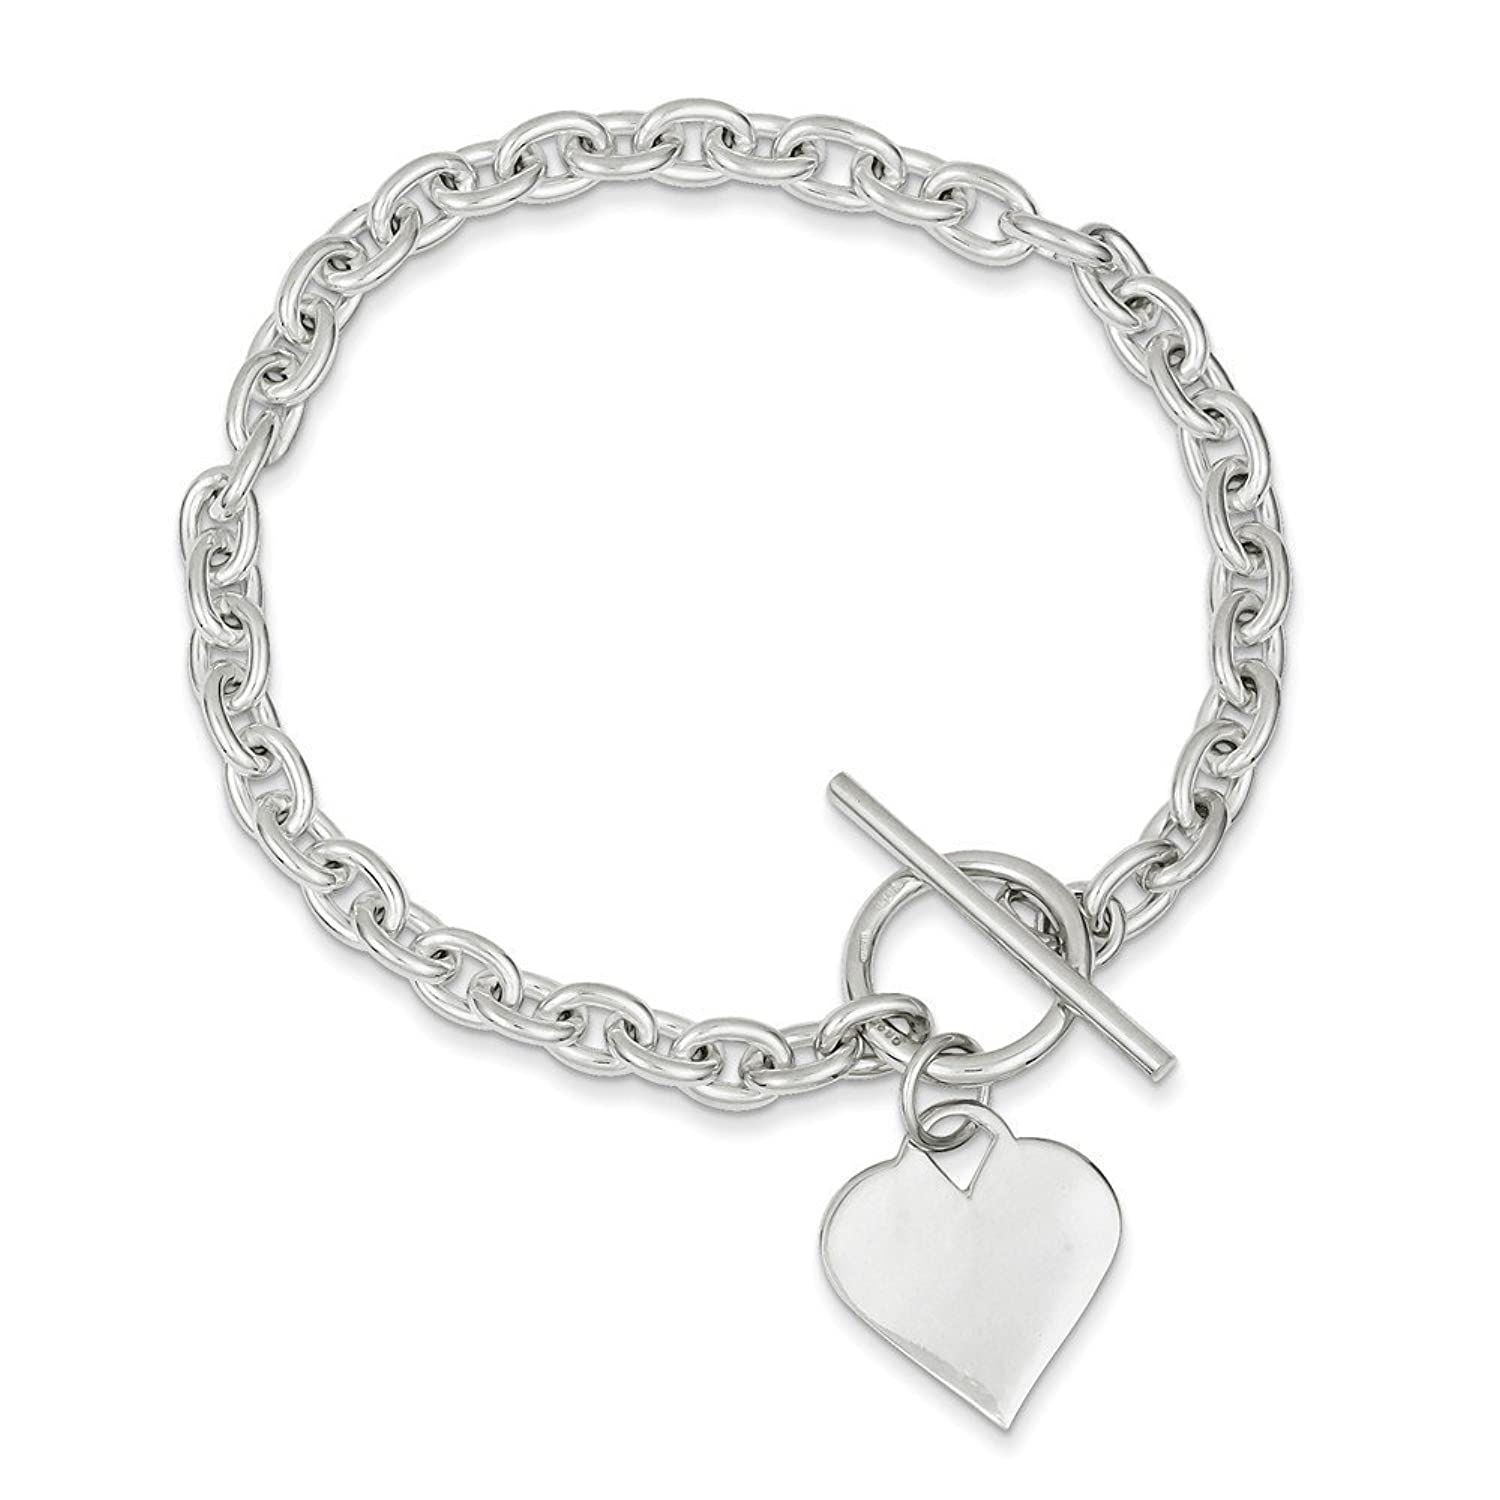 Sterling Silver Heart Toggle Bracelet 8 Inches (0.71 Inches Wide)